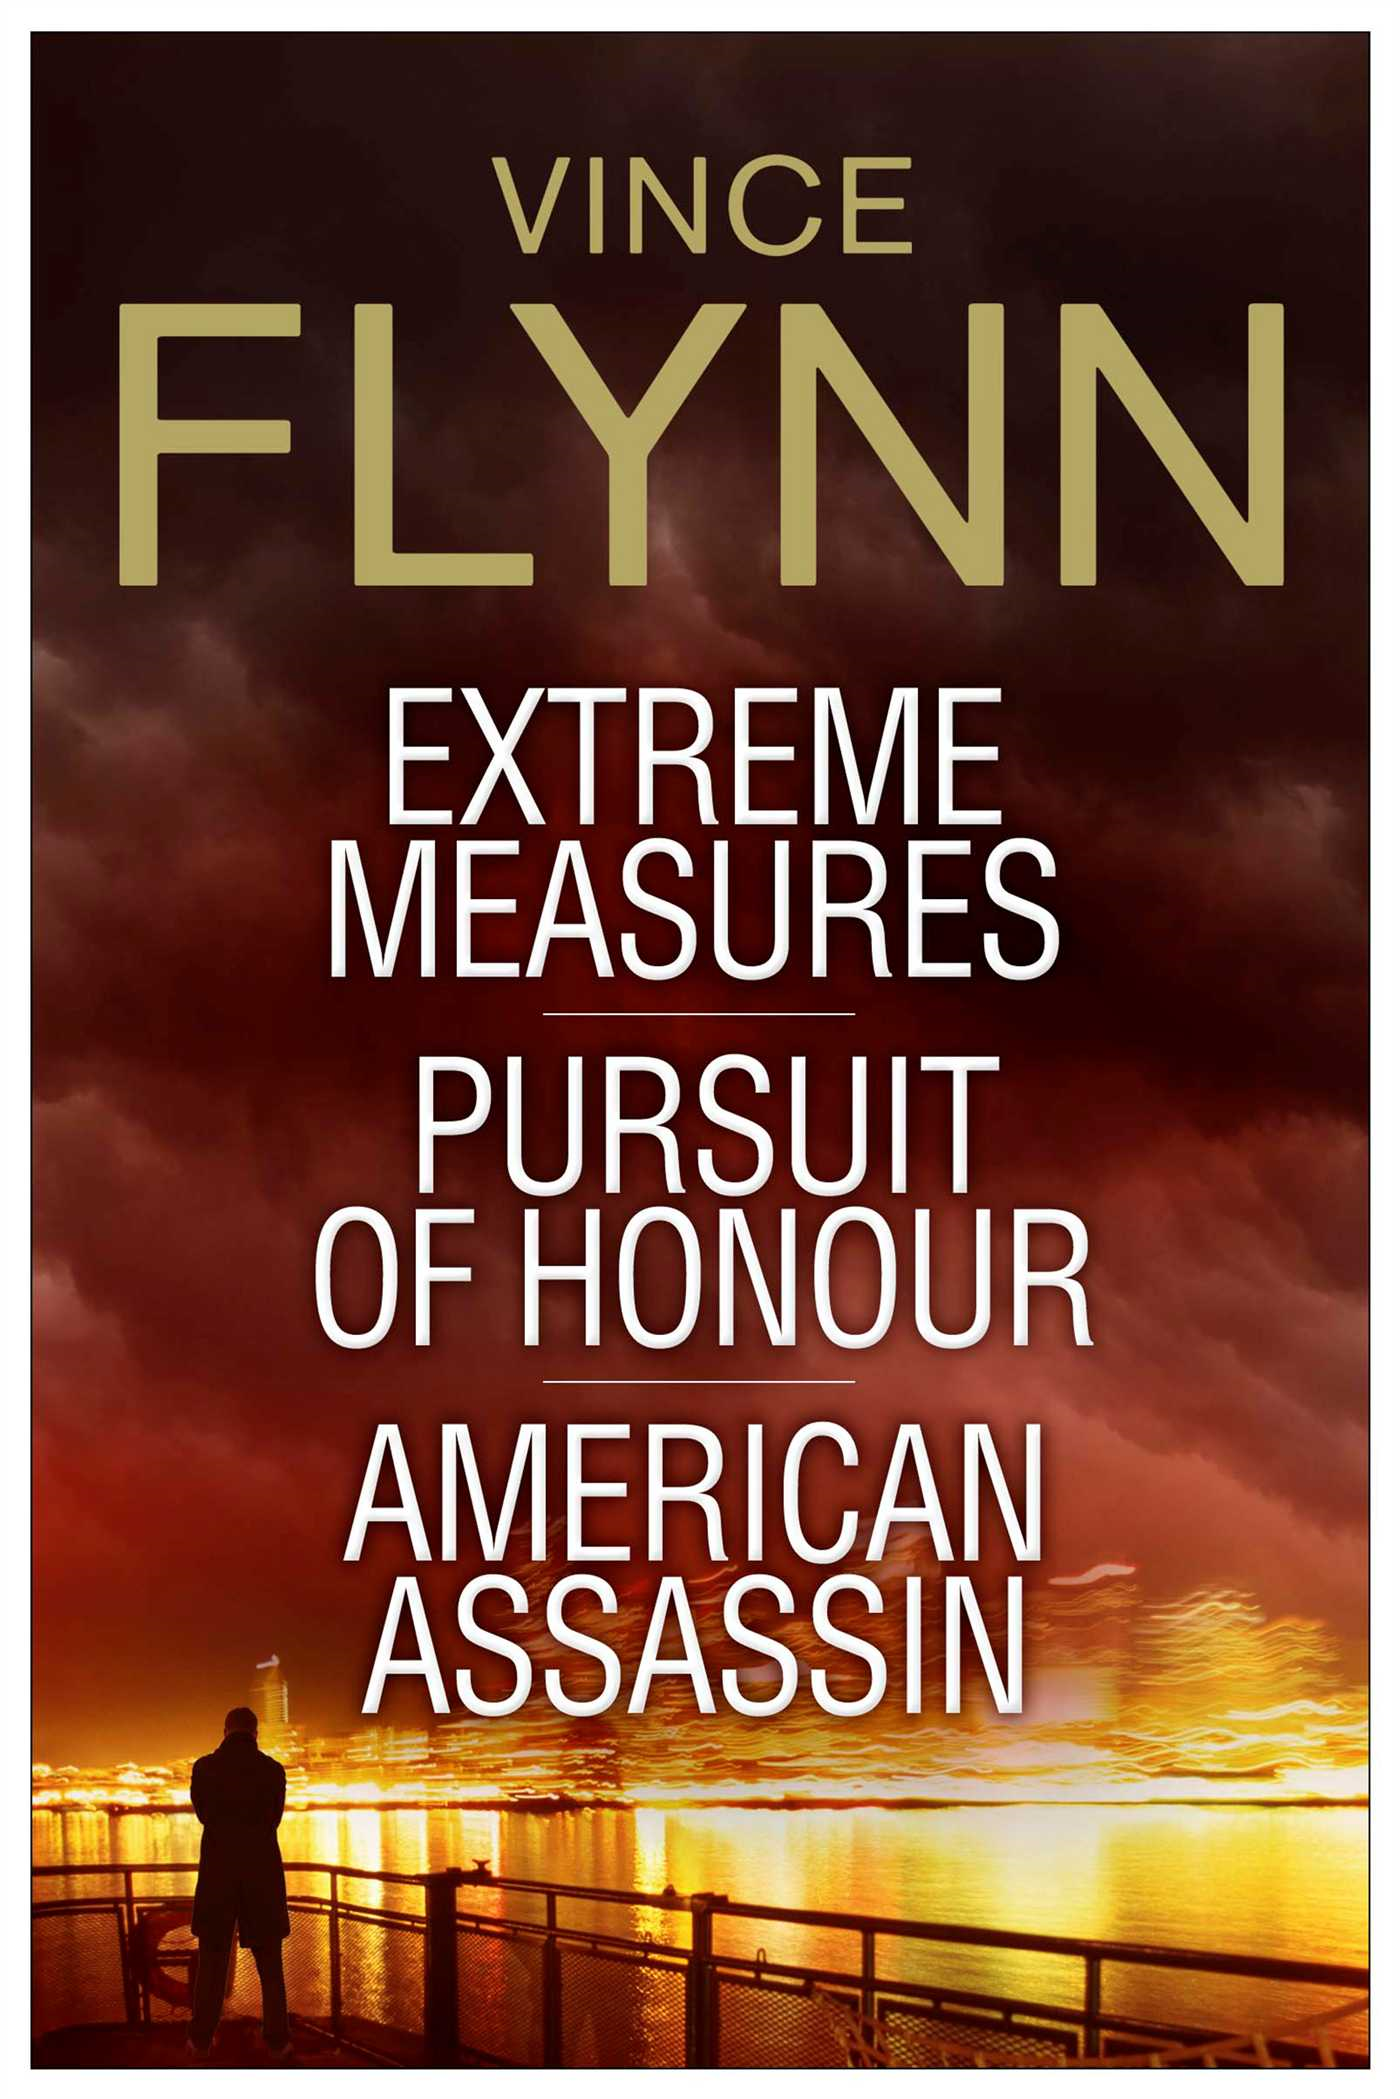 Vince Flynn Collectors' Edition #4 Extreme Measures, Pursuit of Honour, and American Assassin